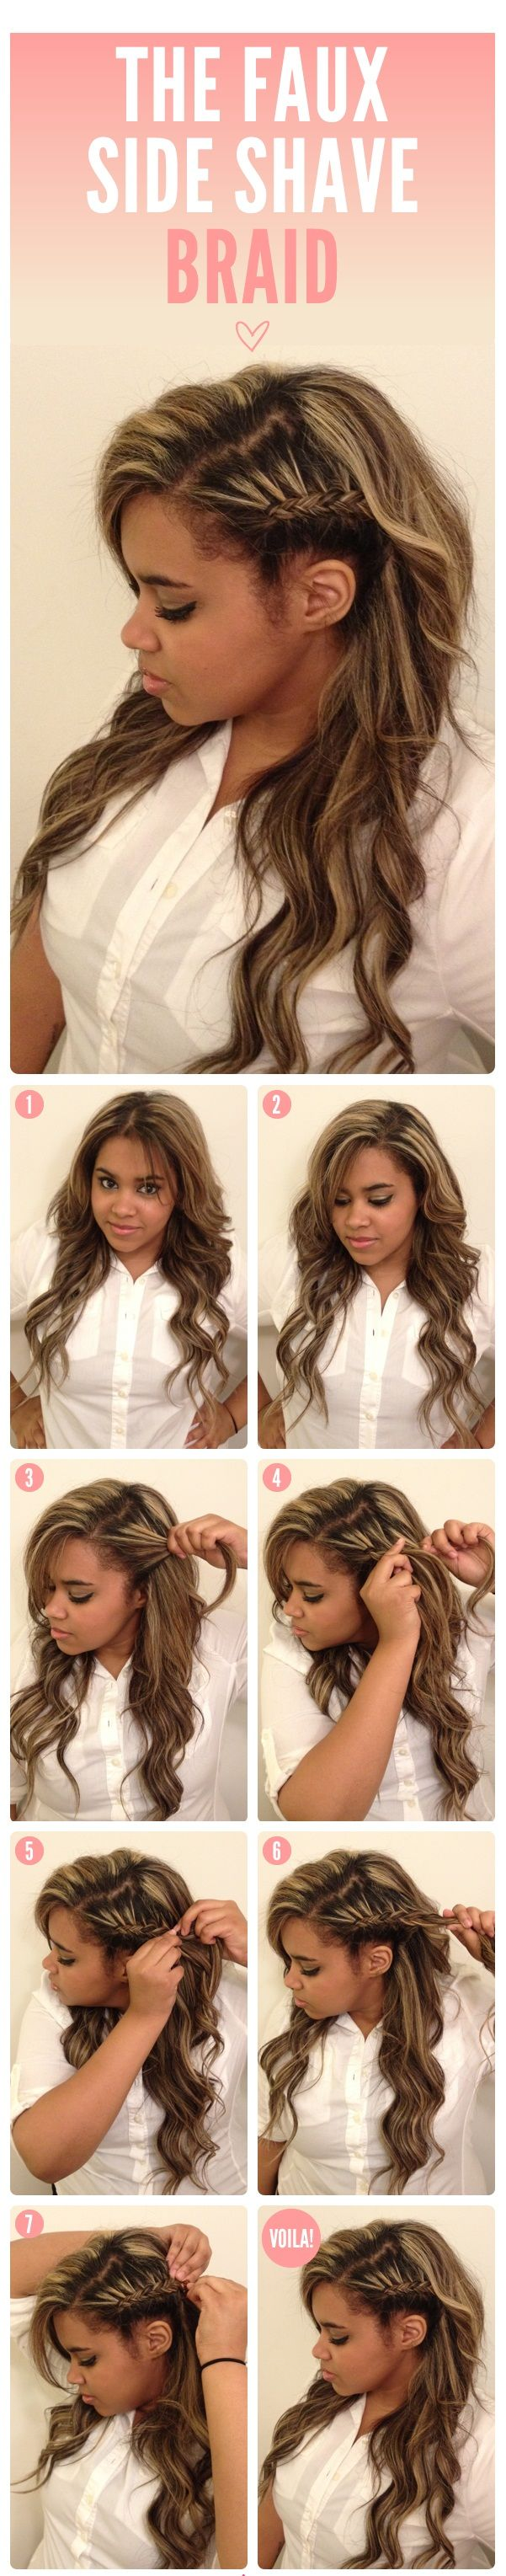 Swell 1000 Ideas About Side Braid Tutorial On Pinterest Side Braids Hairstyle Inspiration Daily Dogsangcom